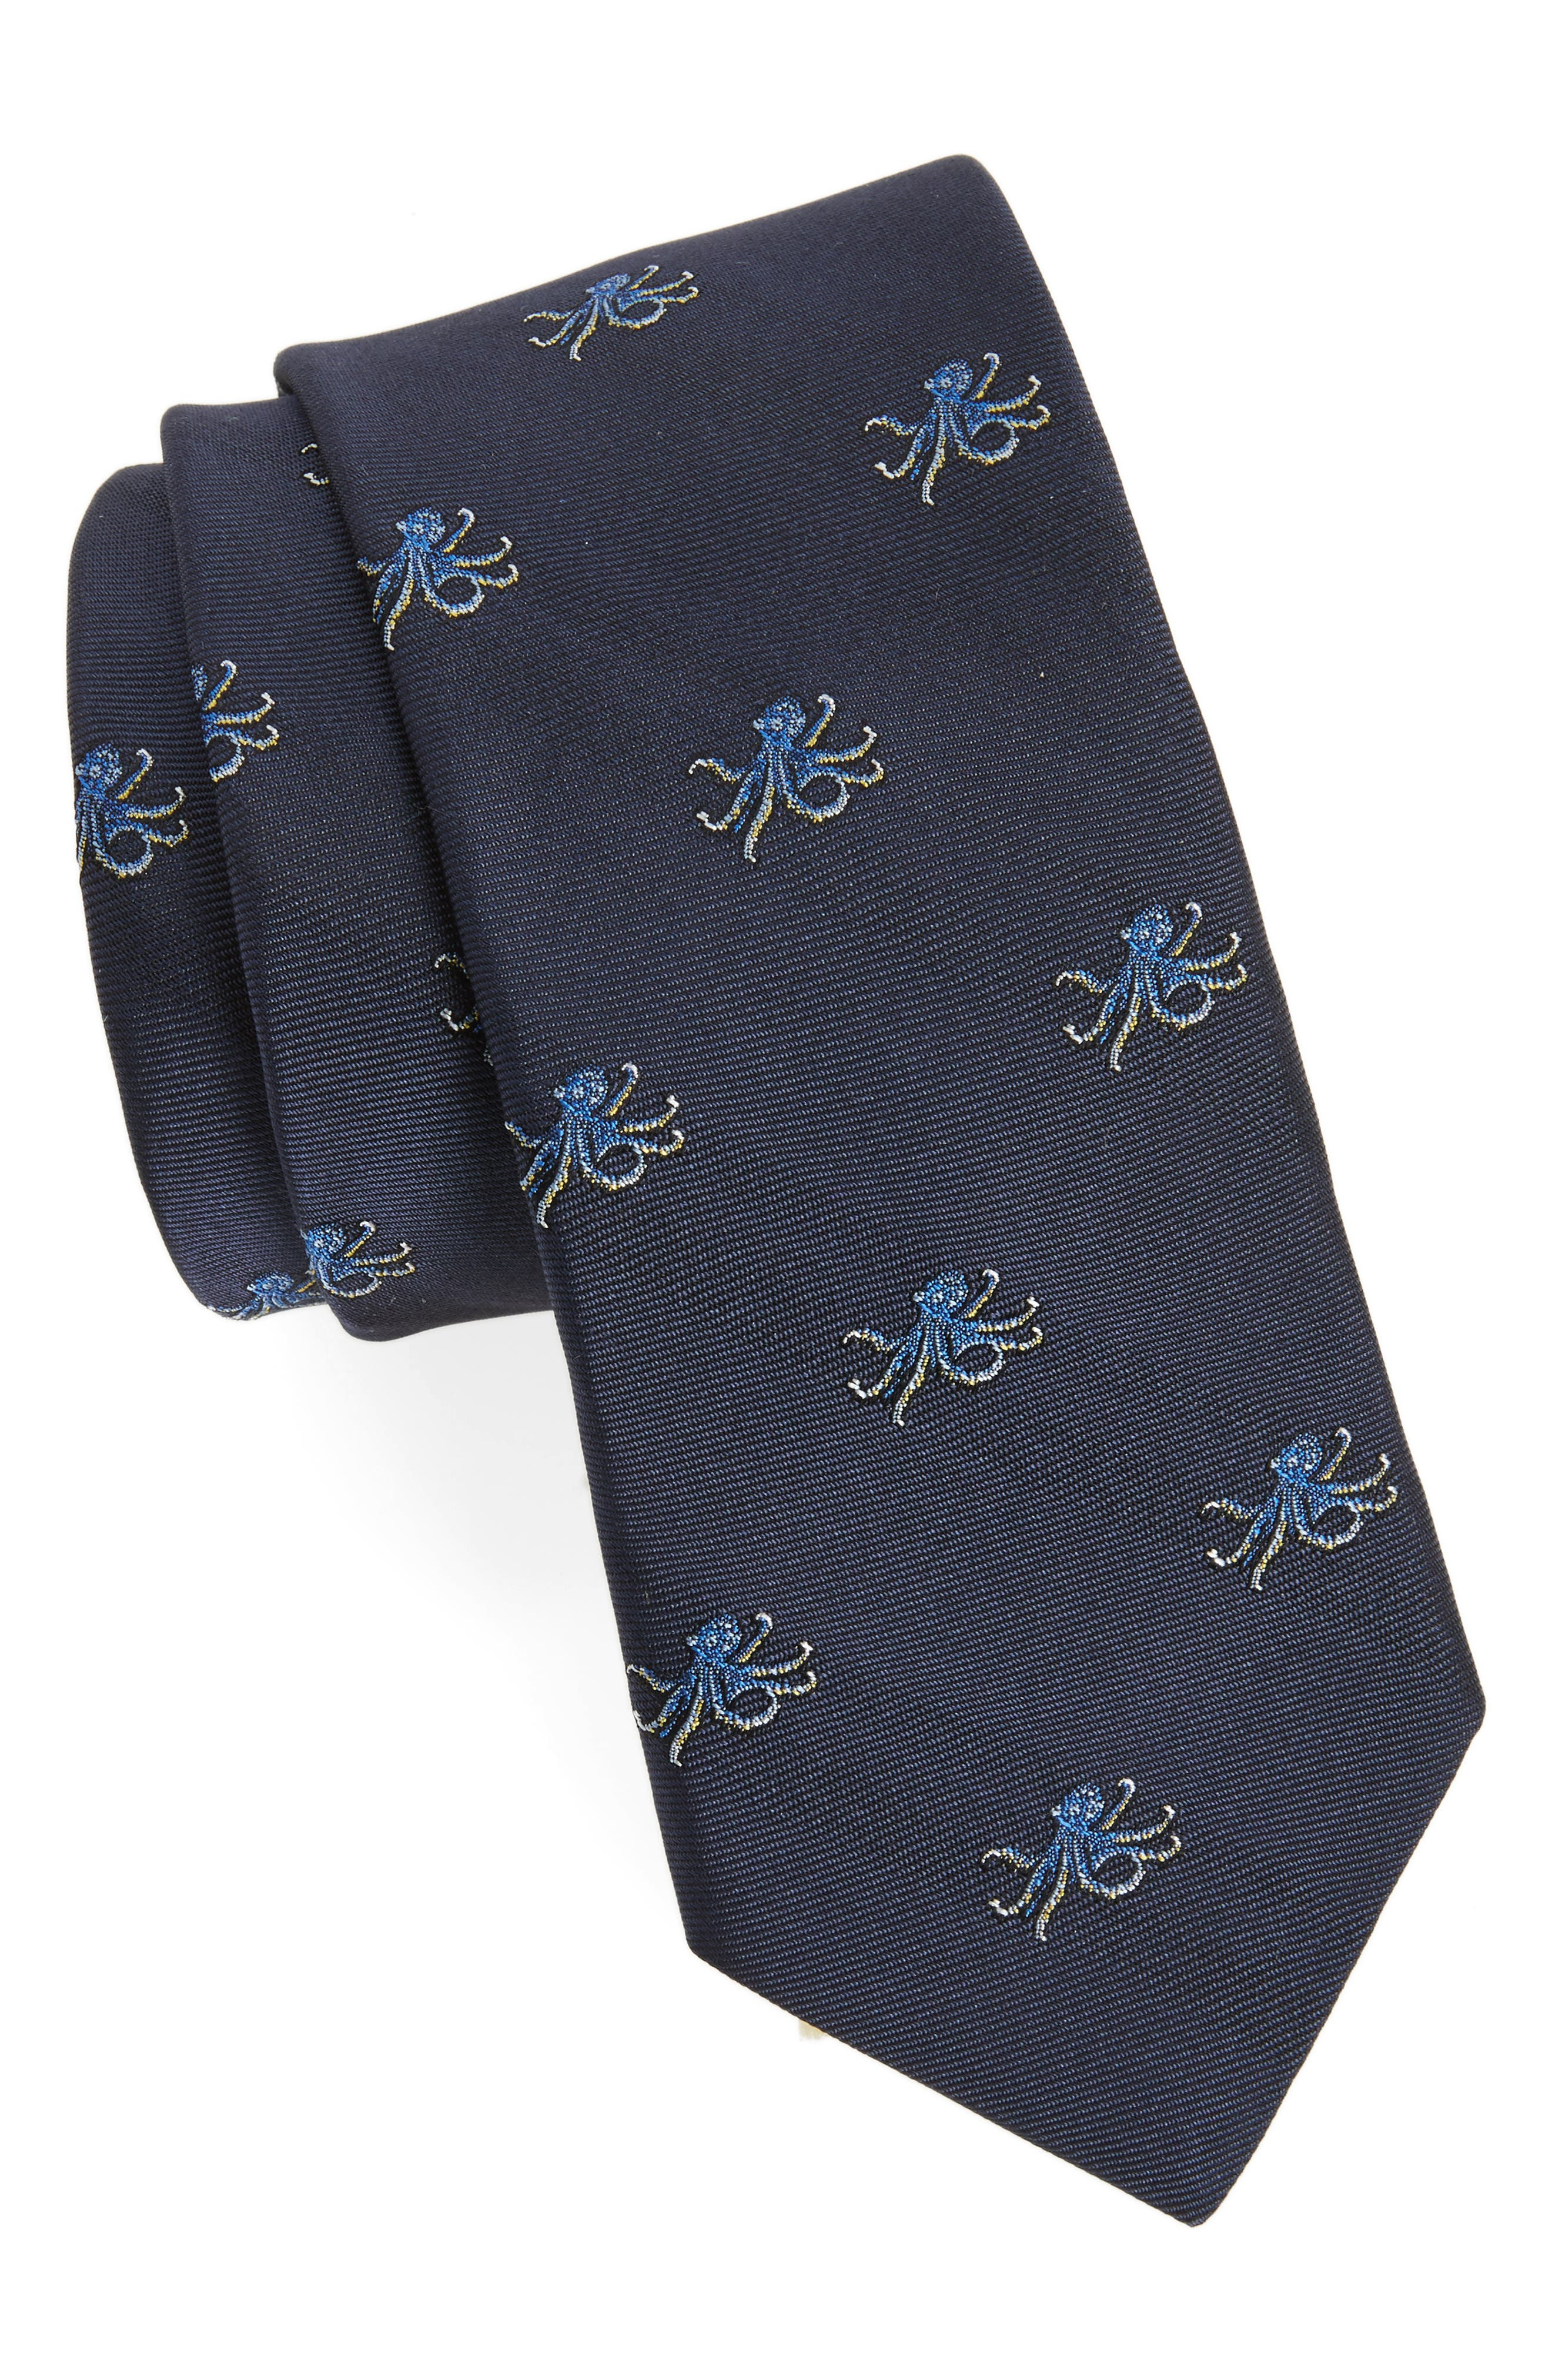 Octopus Silk Tie,                             Main thumbnail 1, color,                             Navy